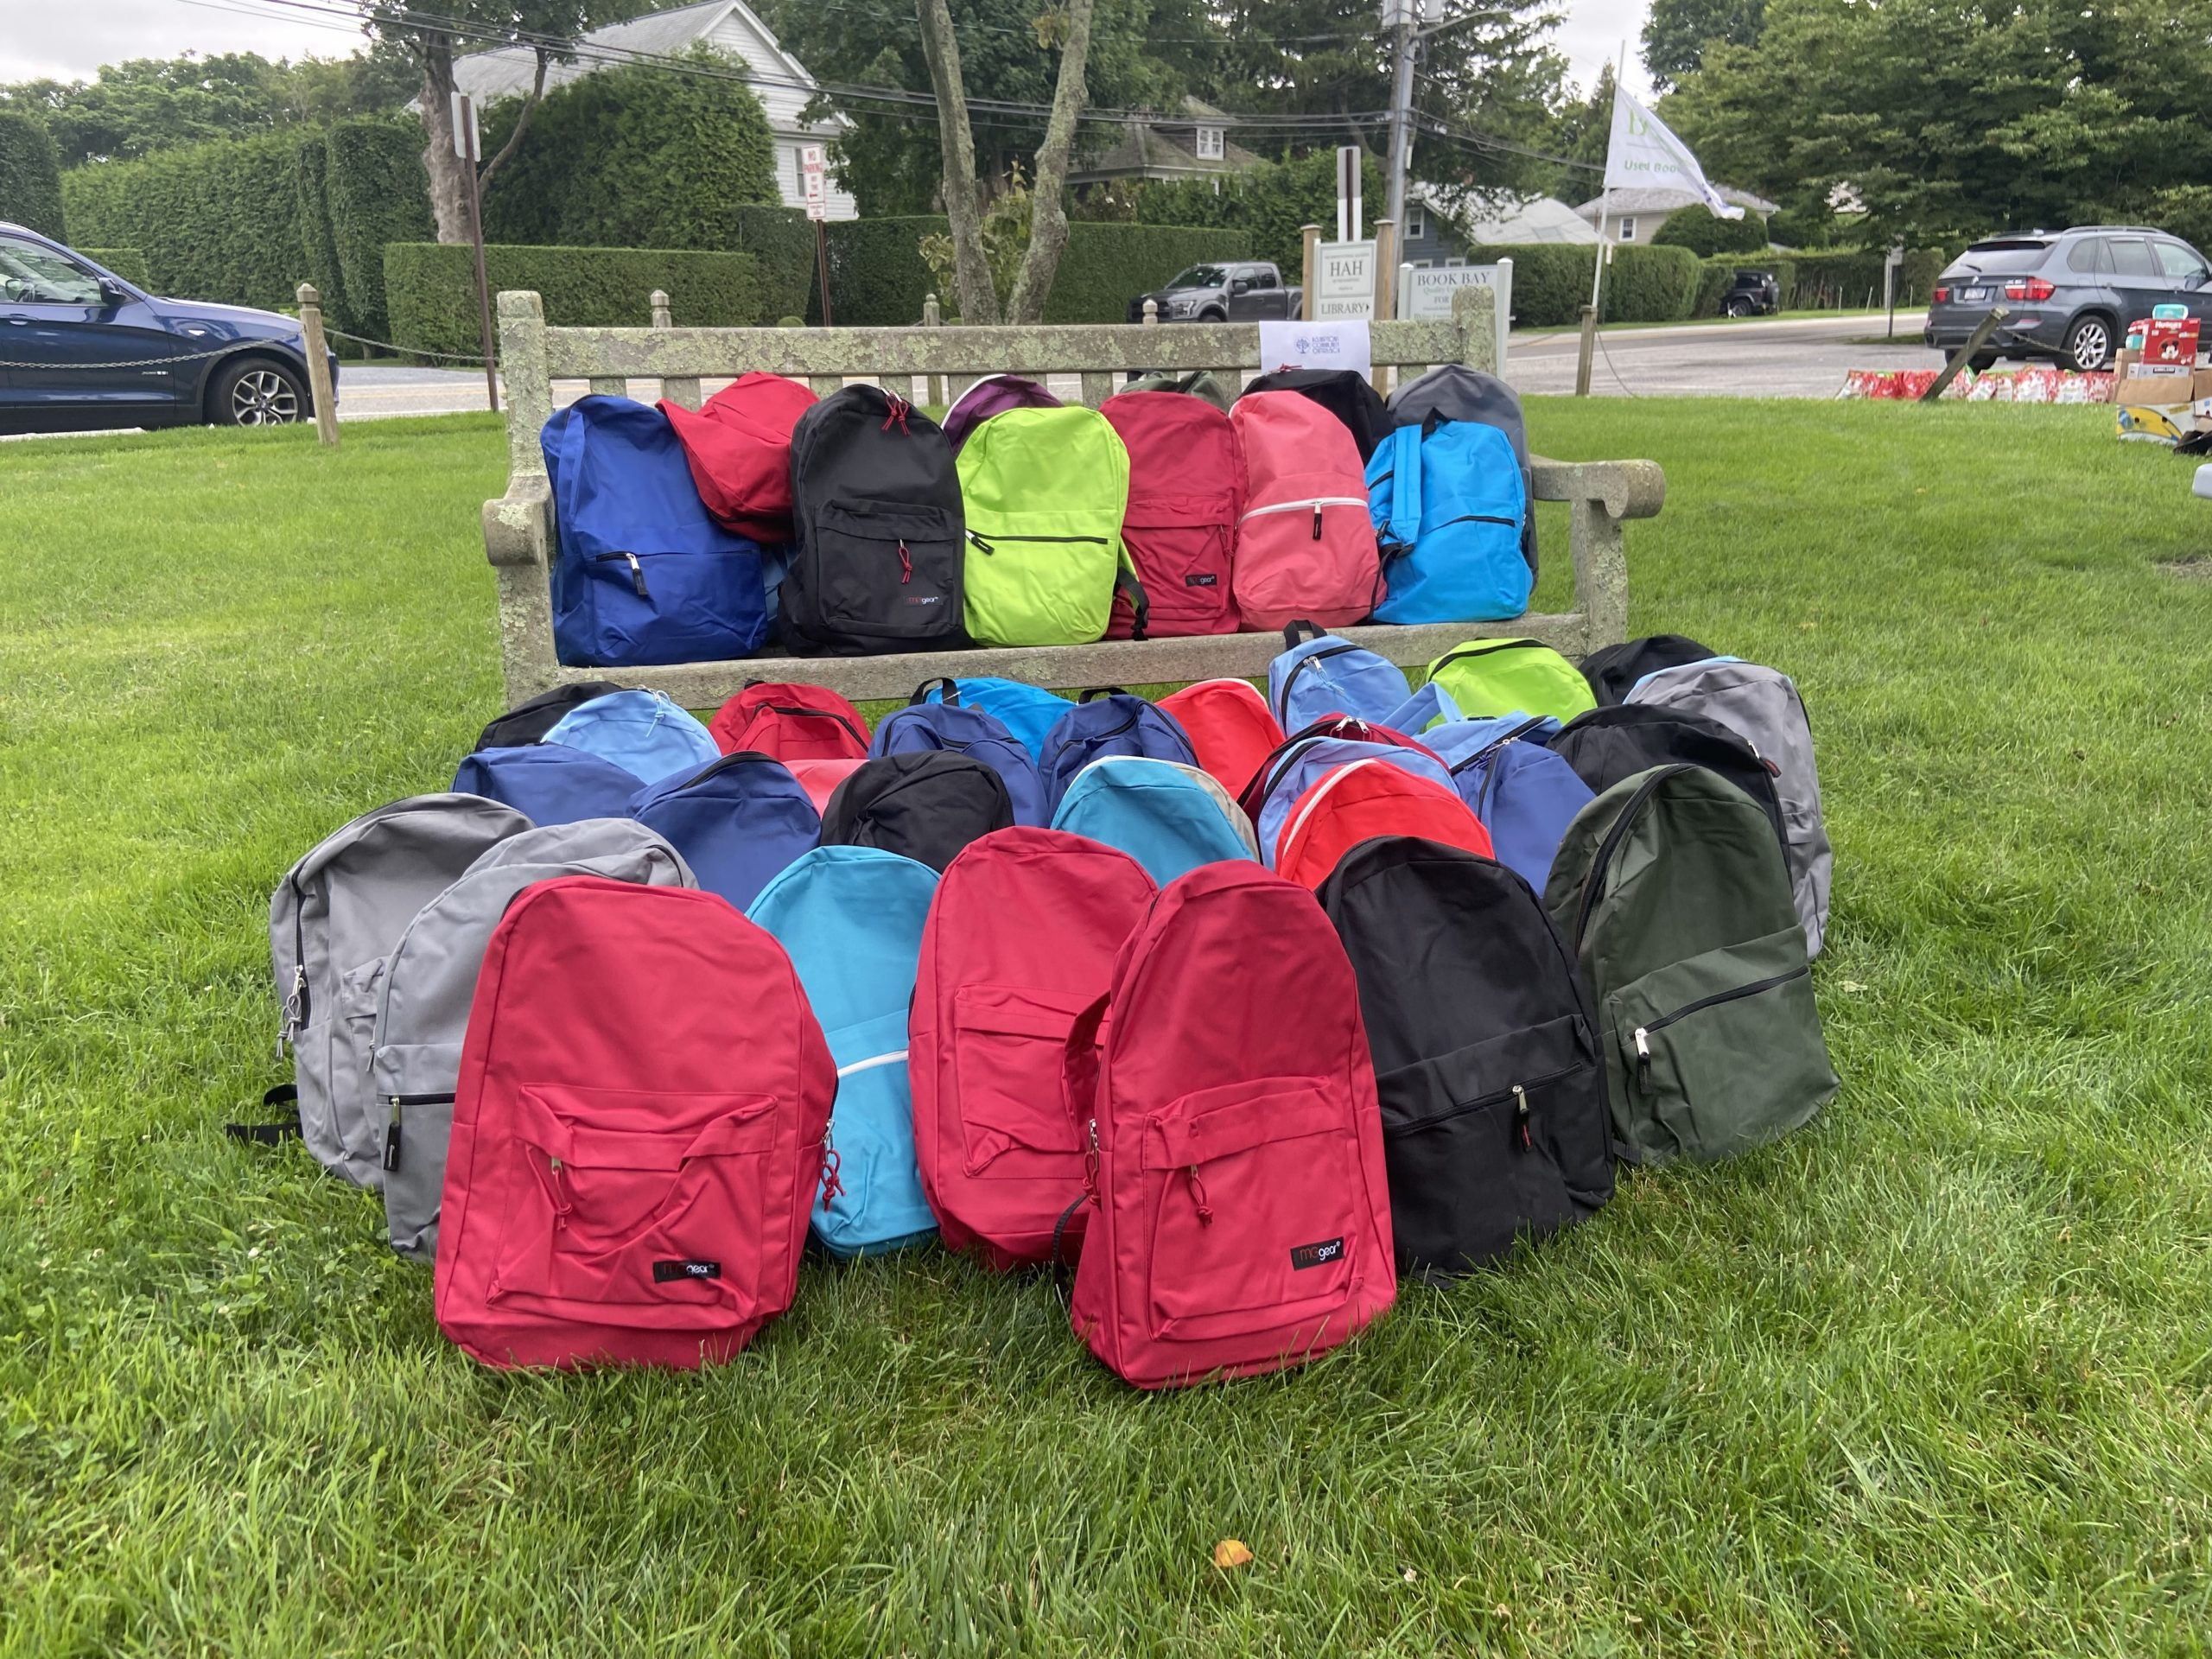 75 backpacks were packed for local children with food, activities, and summer essentials.